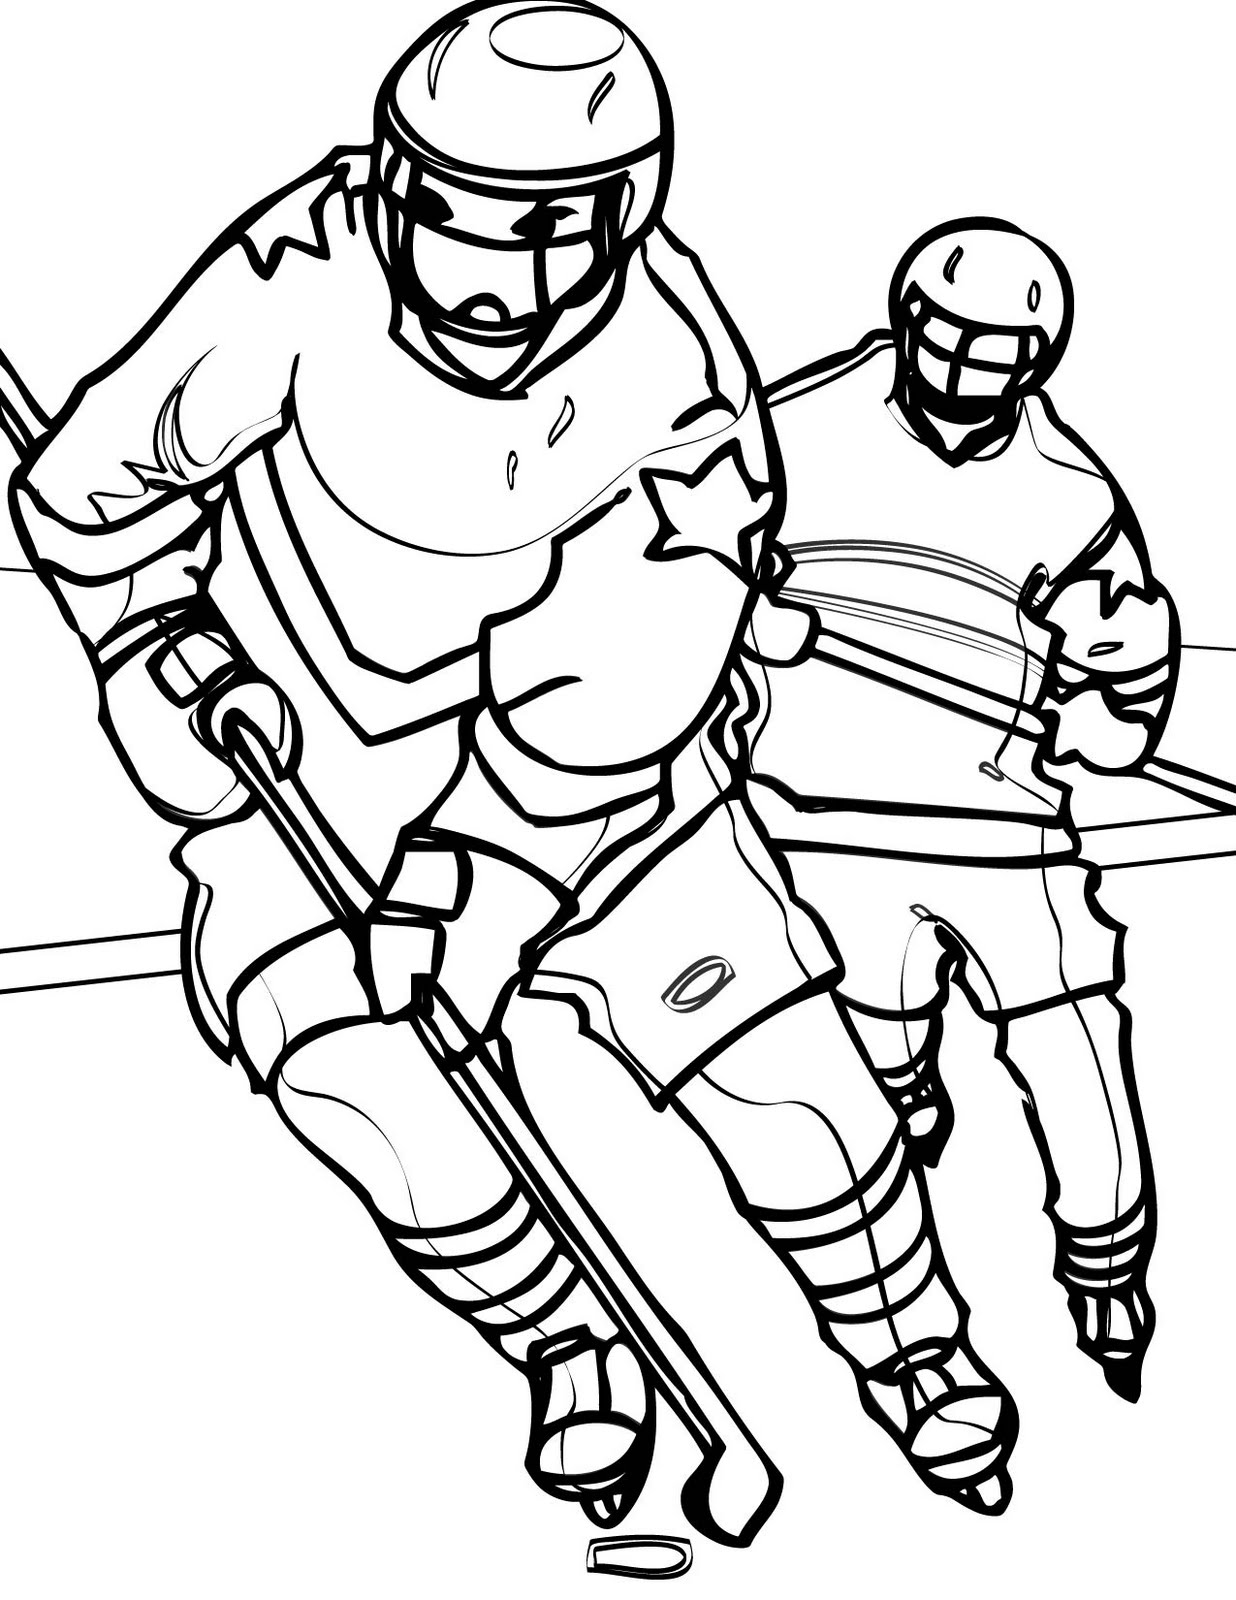 sports pictures to color free printable sports coloring pages to color sports pictures